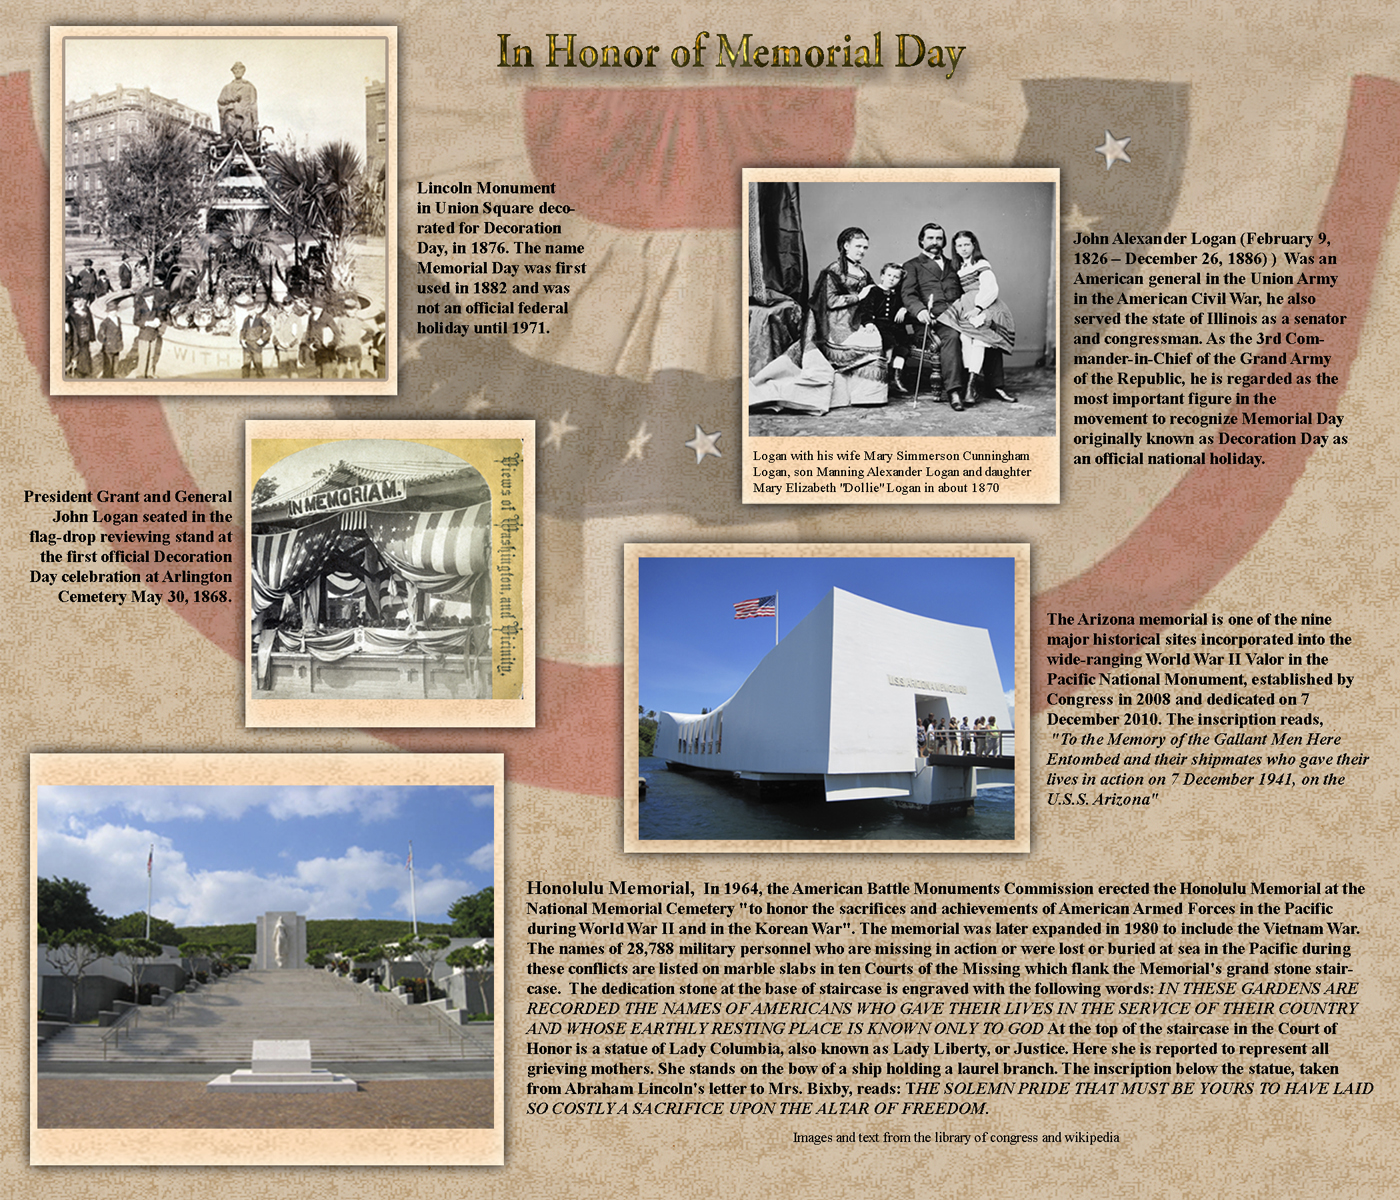 Memorial Day historical facts